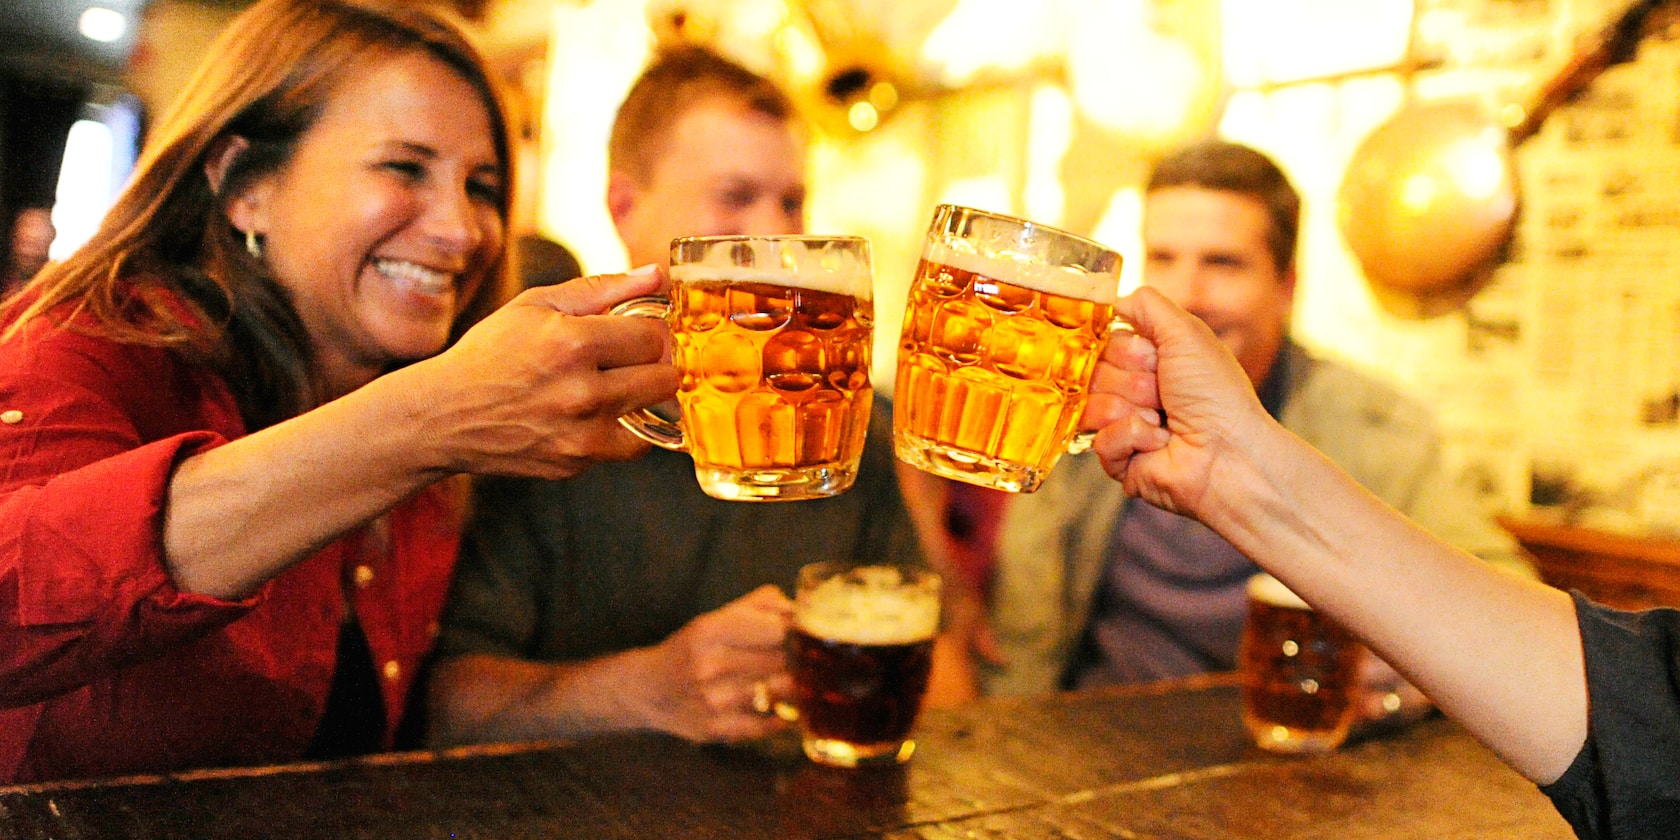 Two couples drinking beer in steins, with a woman toasting another woman